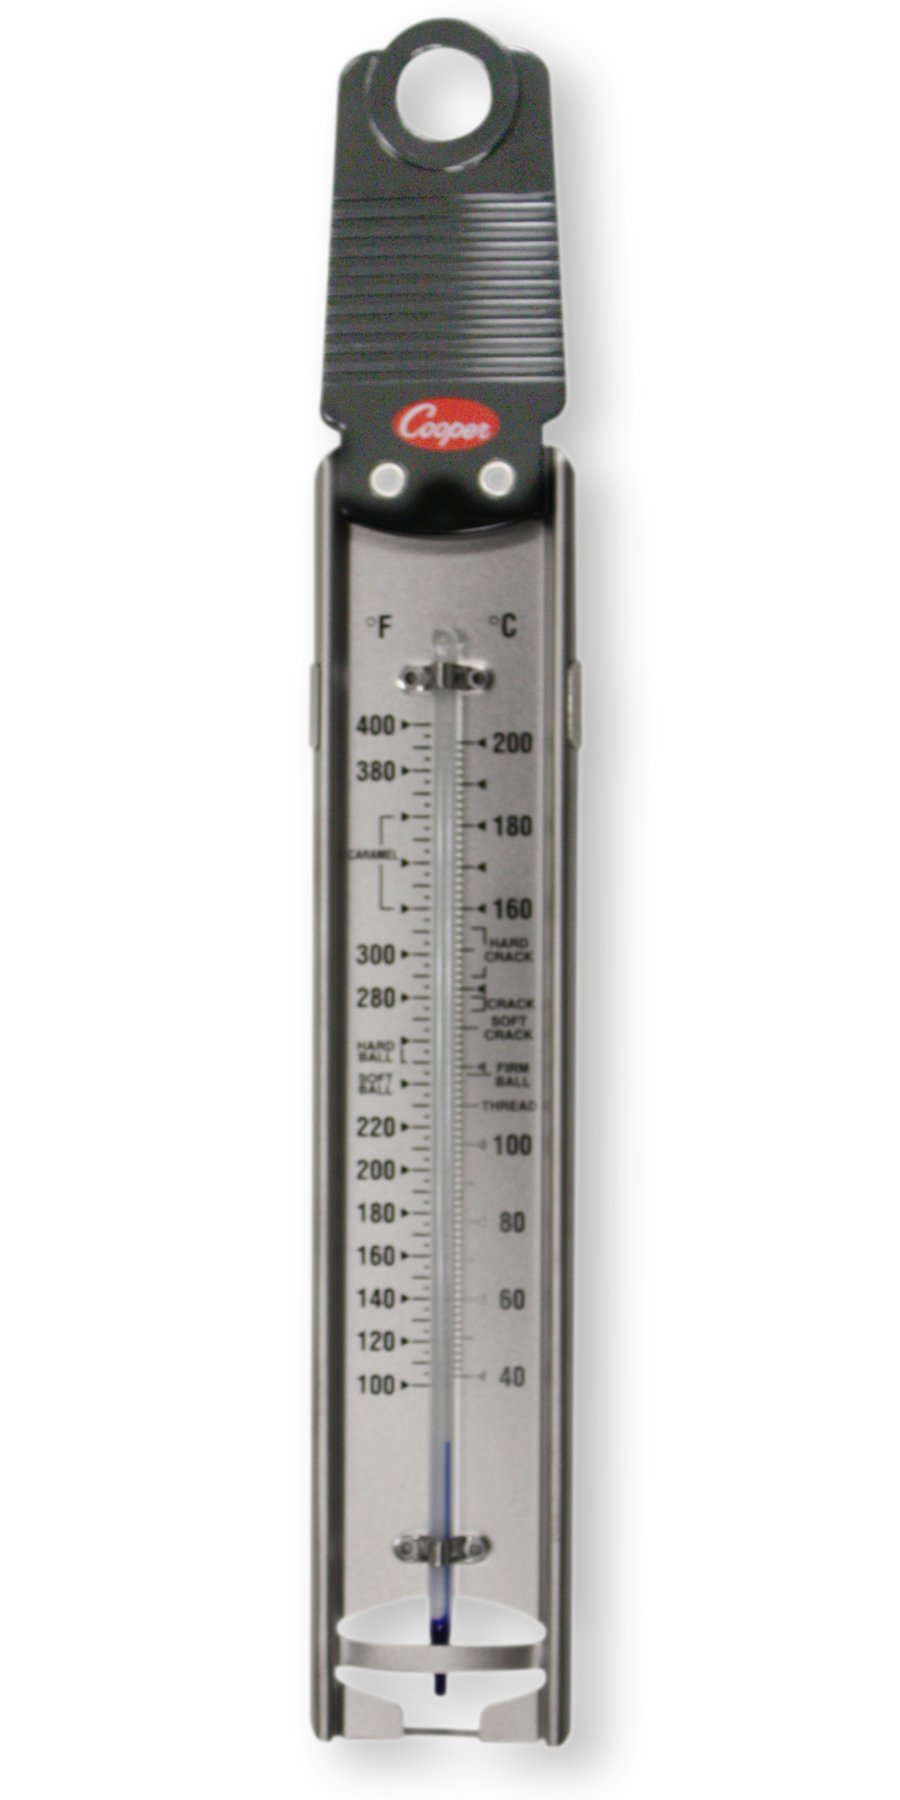 Cooper-Atkins 329-0-8 Glass Tube Bi-Metals Candy Deep-Fry Paddle Thermometer, 100 to 400 degrees F Temperature Range by Cooper (Image #1)